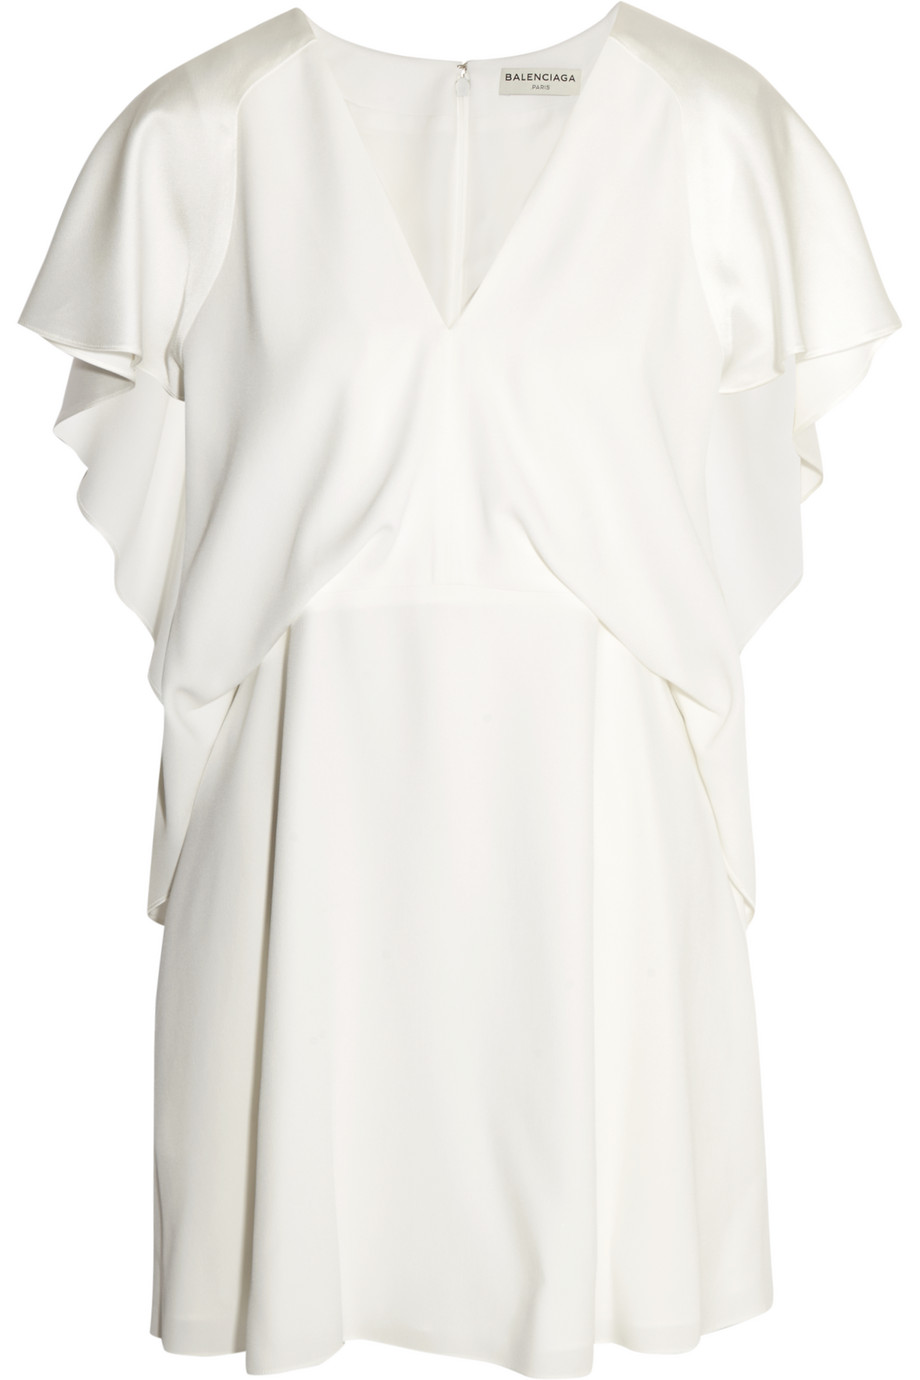 Balenciaga Ruffled Satin-Crepe Mini Dress, White, Women's, Size: 34